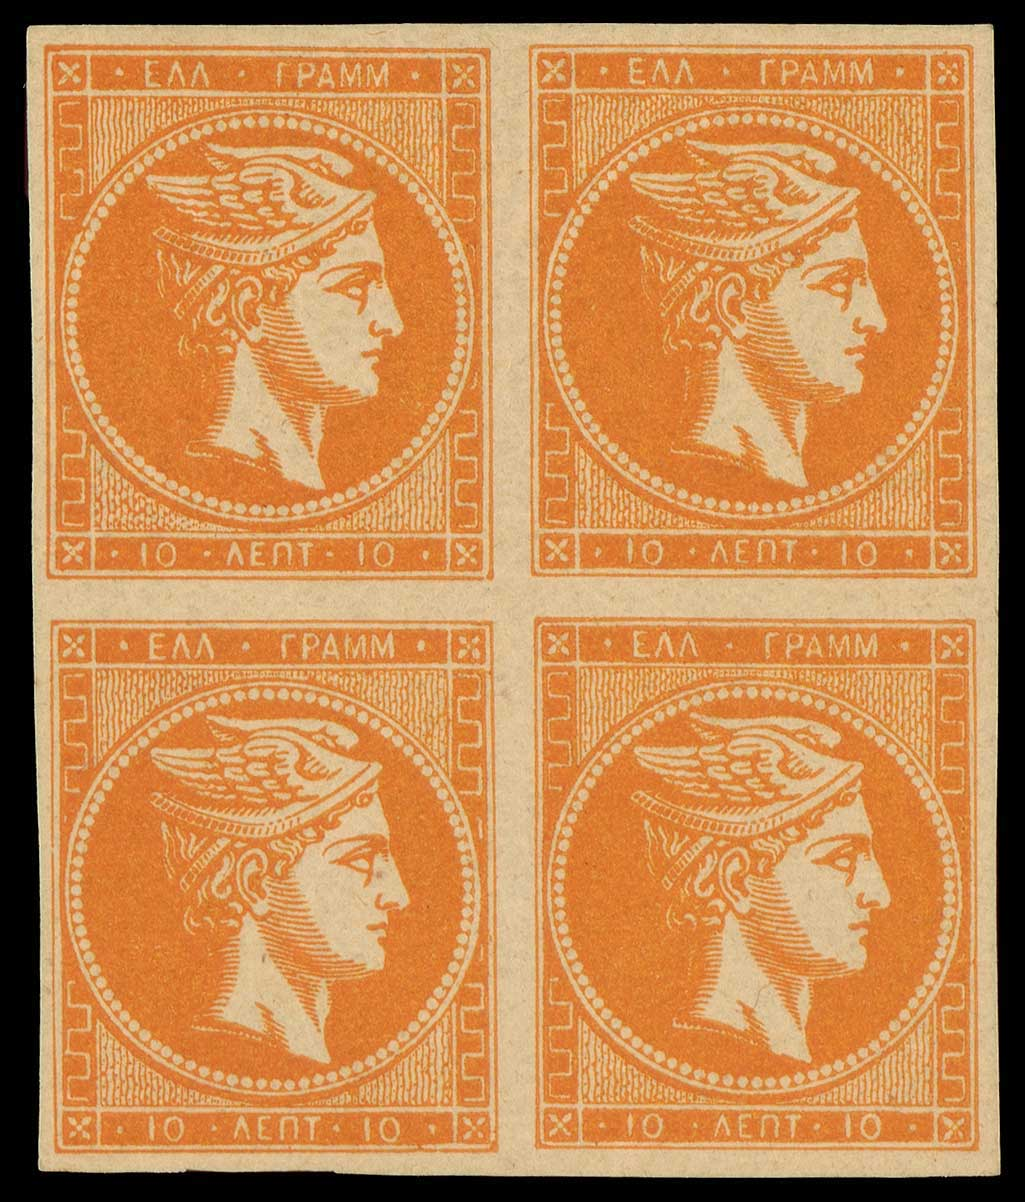 Lot 203 - -  LARGE HERMES HEAD 1880/86 athens printing -  A. Karamitsos Public & Live Internet Auction 666 Large Hermes Heads Exceptional Stamps from Great Collections